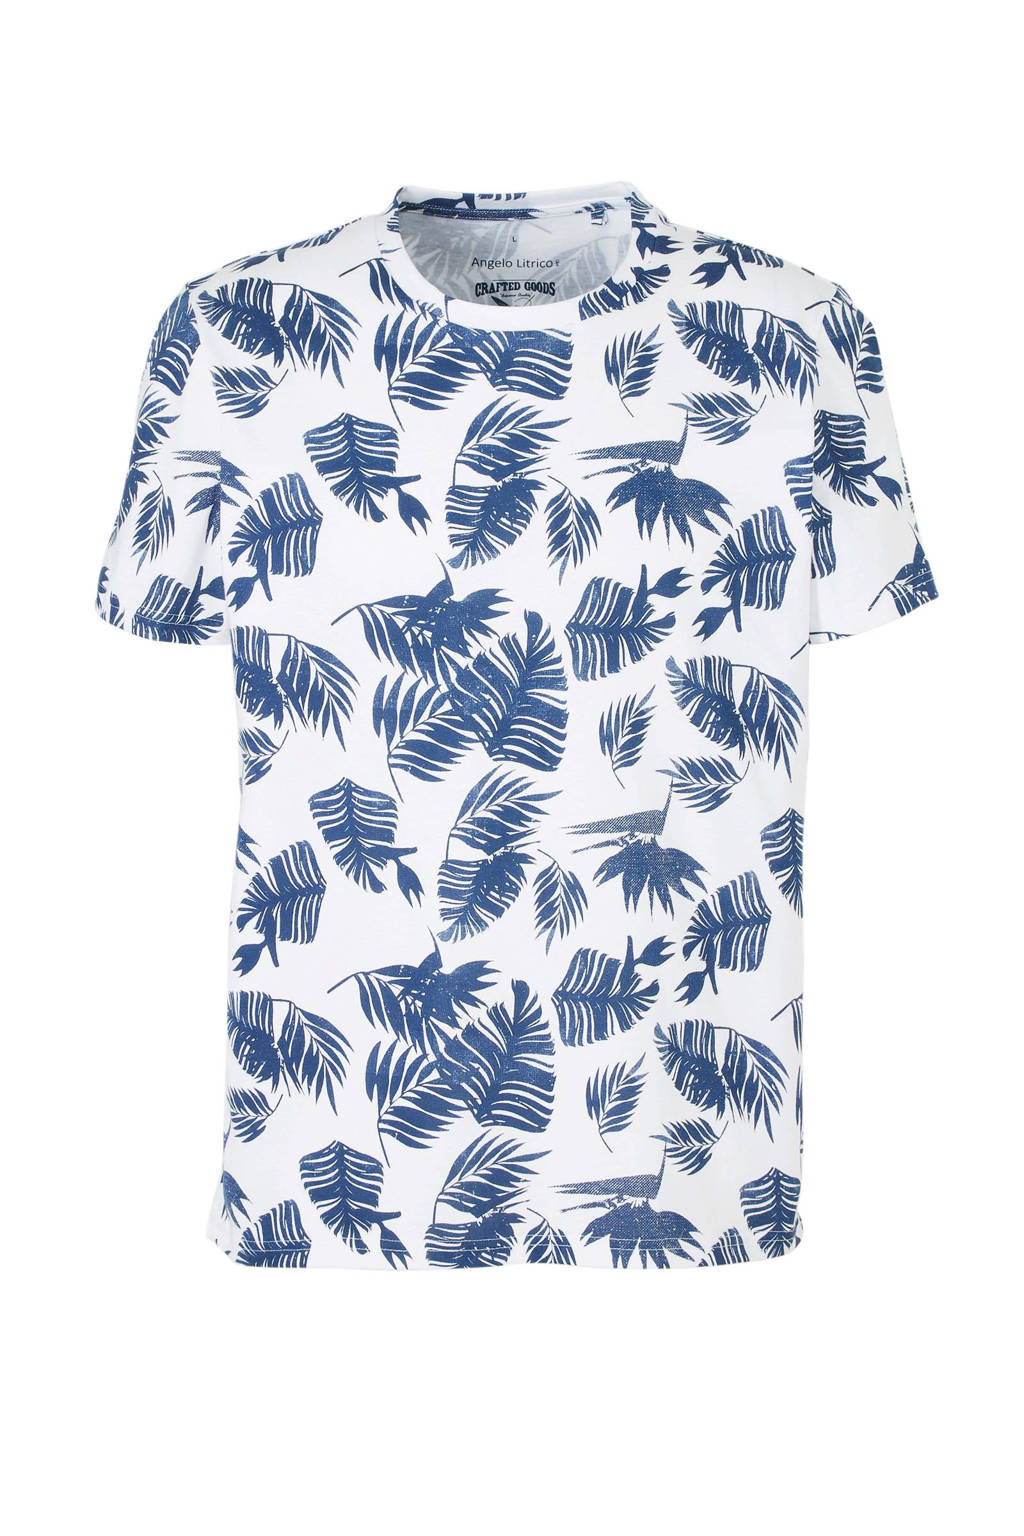 C&A Angelo Litrico T-shirt met all over print, Wit